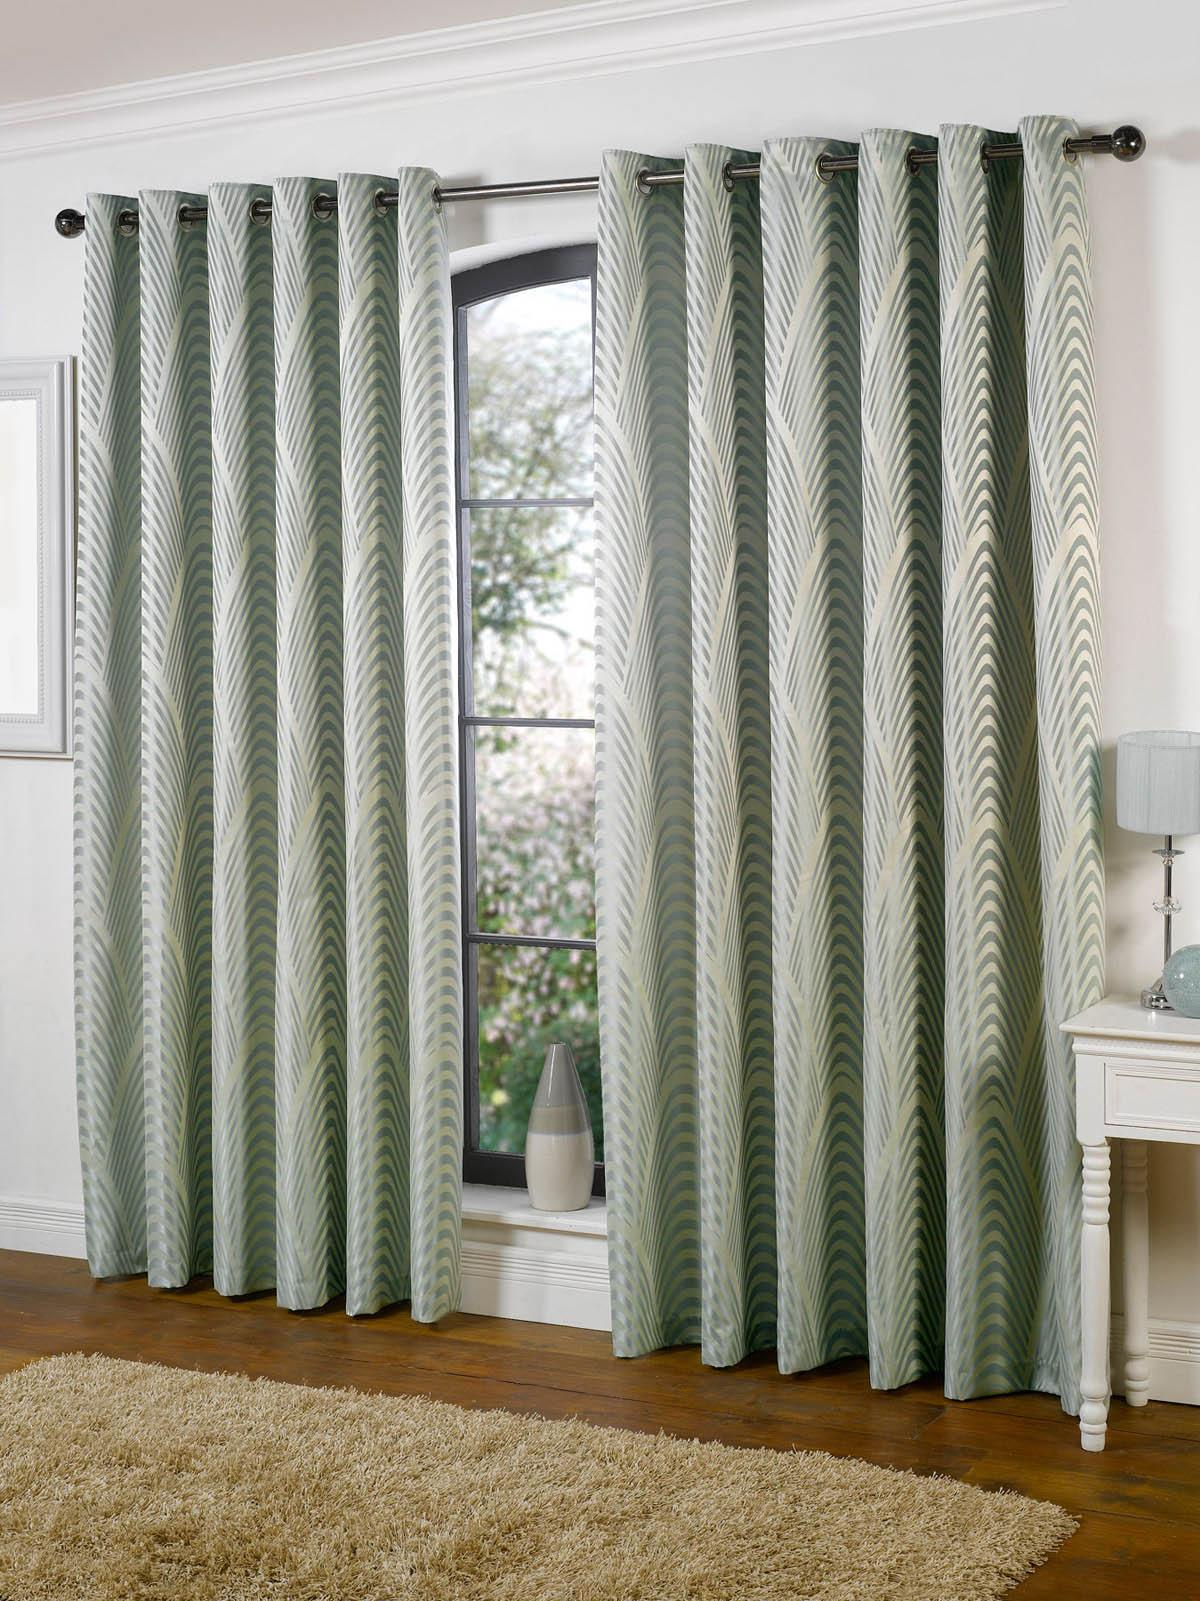 dakota lined eyelet ready made curtains fully lined. Black Bedroom Furniture Sets. Home Design Ideas